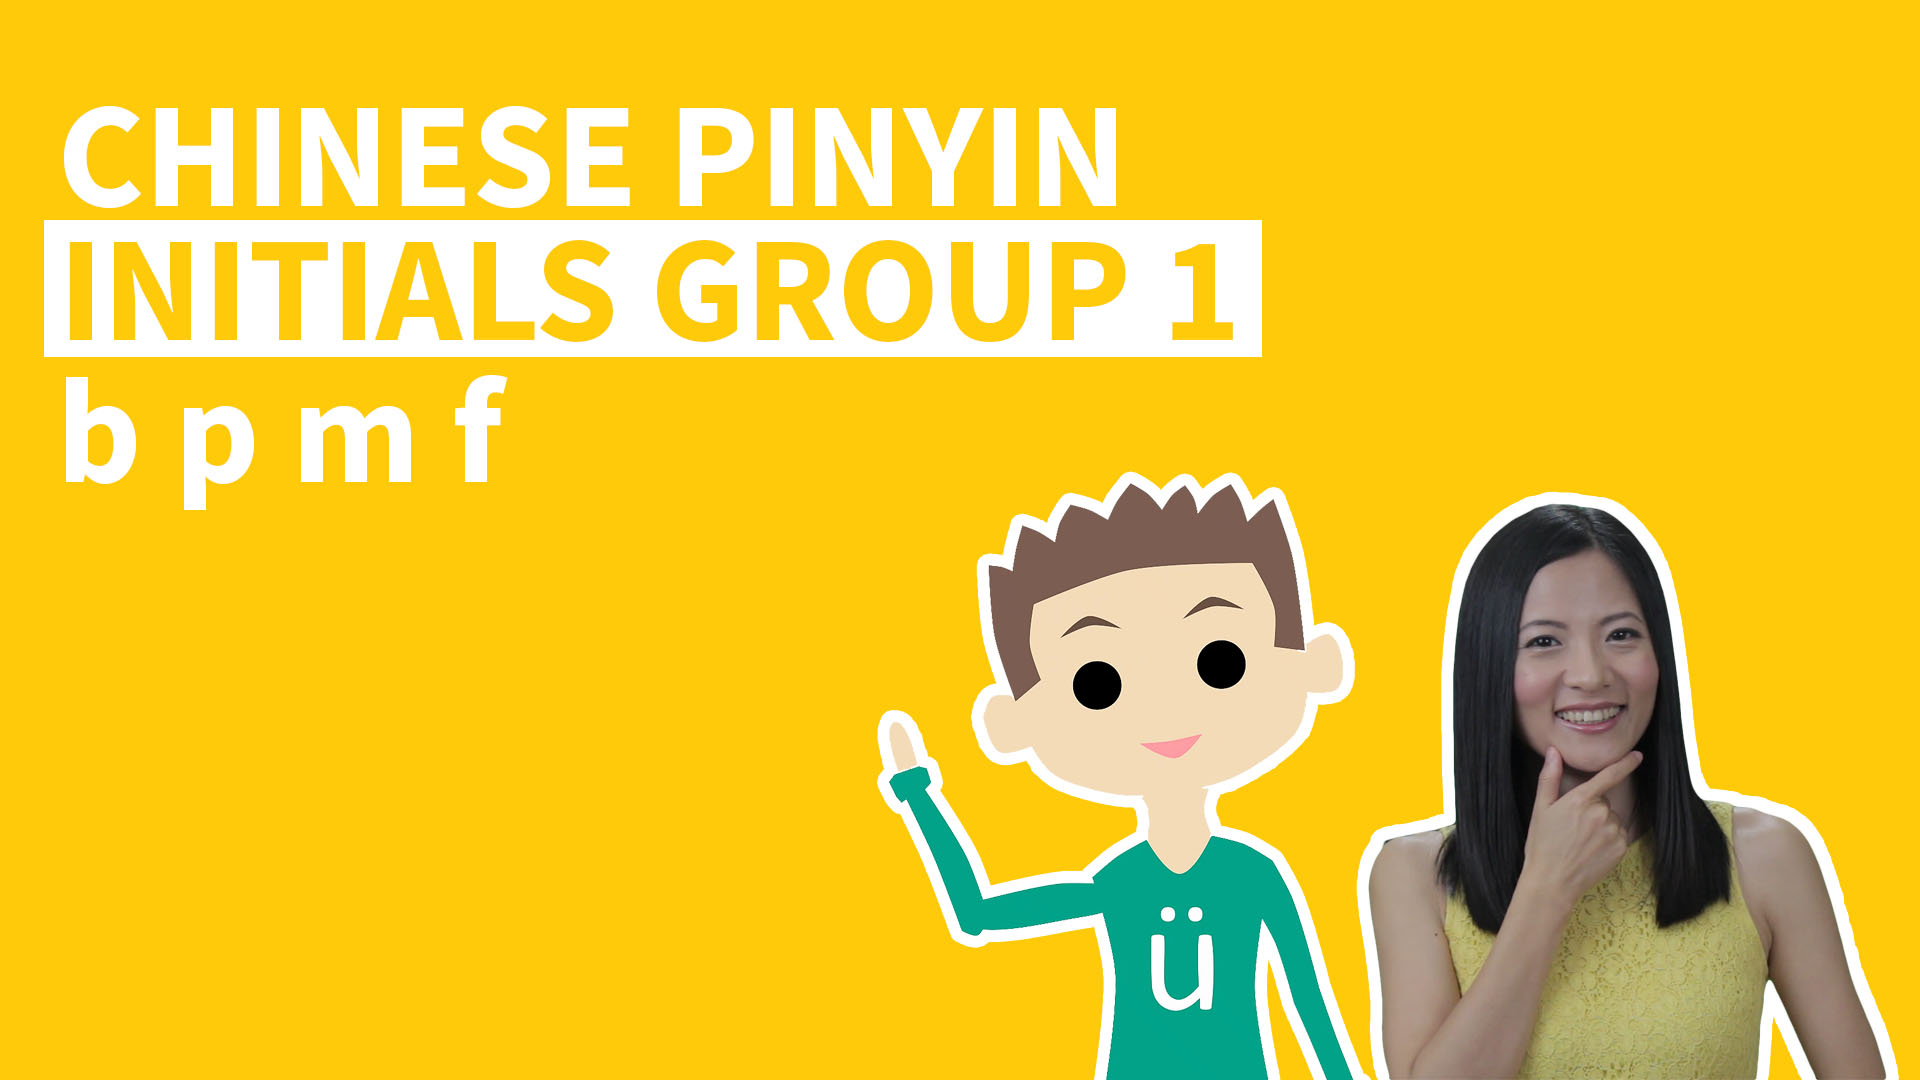 This Pinyin video lesson focuses on Chinese Pinyin Initials b p m f - the basics for every Pinyin beginner, with 2 listening quizzes for more practice!